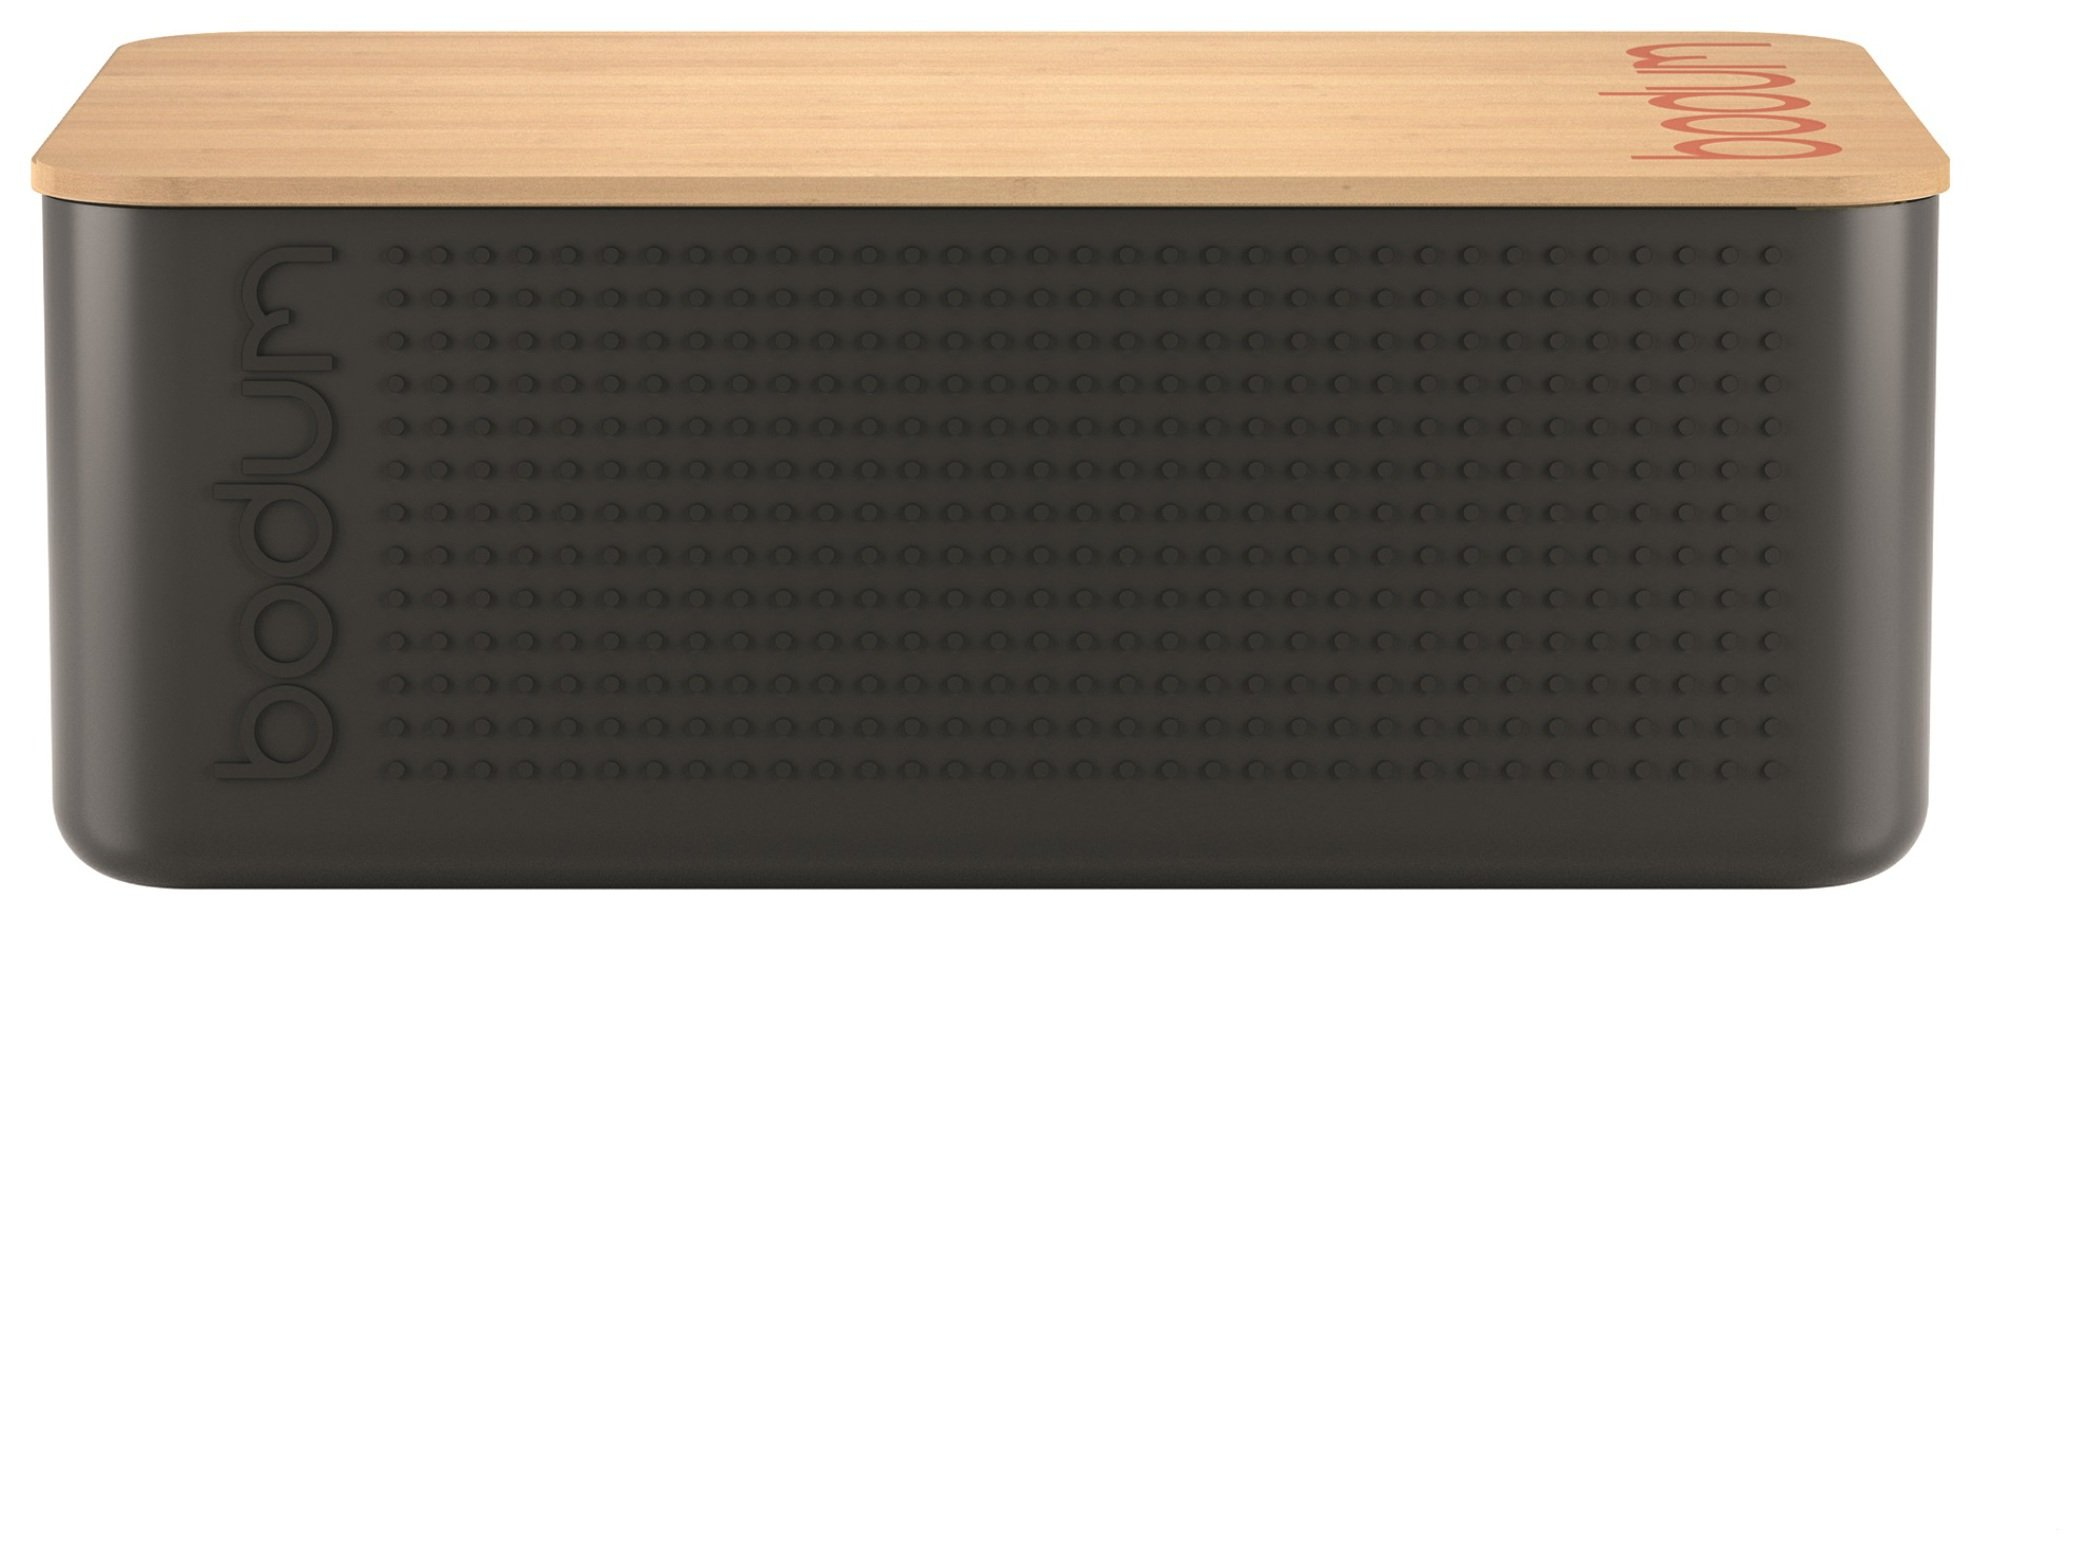 Image of Bodum Bistro Bread Box - Black